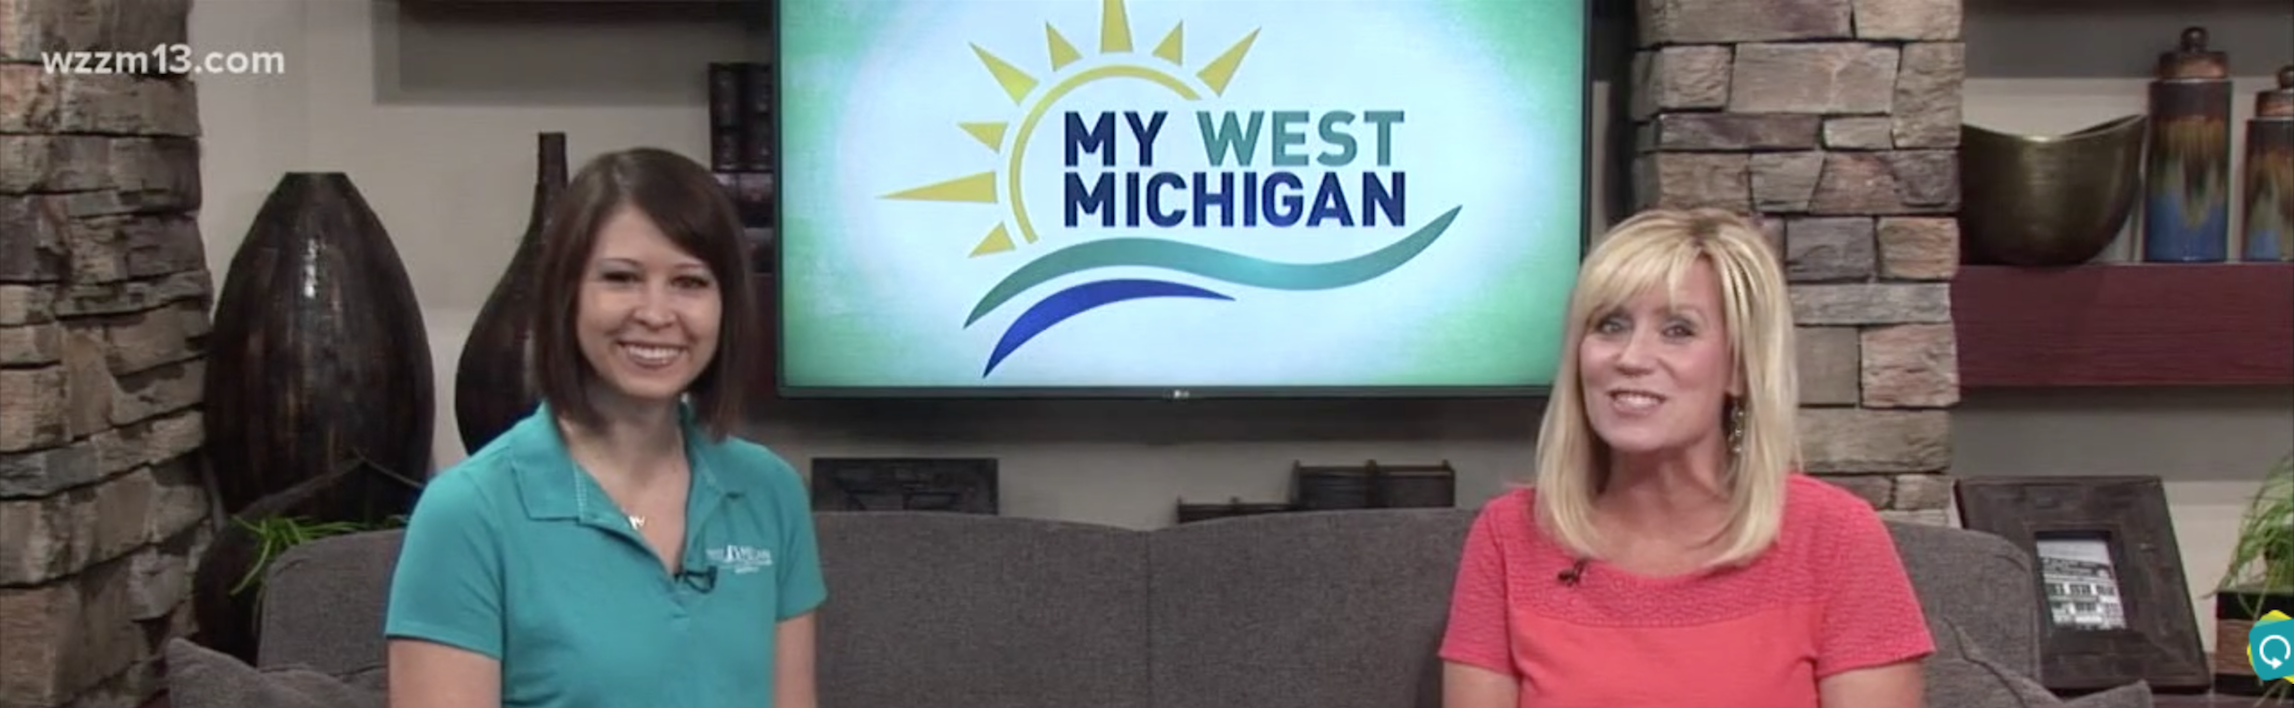 West Michigan Tourist Association Events in May West Michigan ...